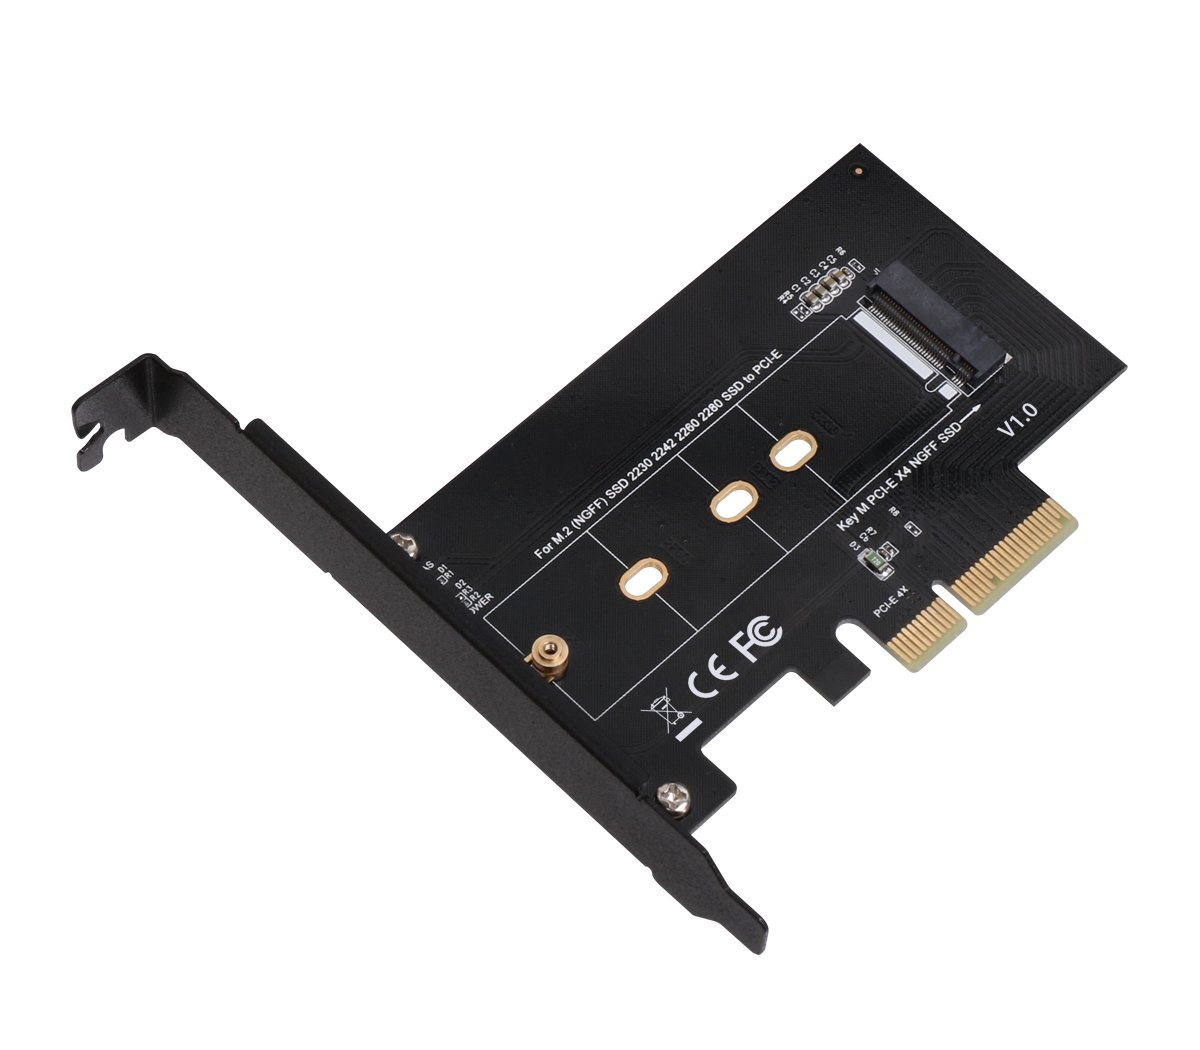 SIIG M.2 NGFF SSD M Key NVME PCIe Card Adapter - Supports M.2 PCIe 2230, 2242, 2260 and 2280 (SC-M20014-S1)